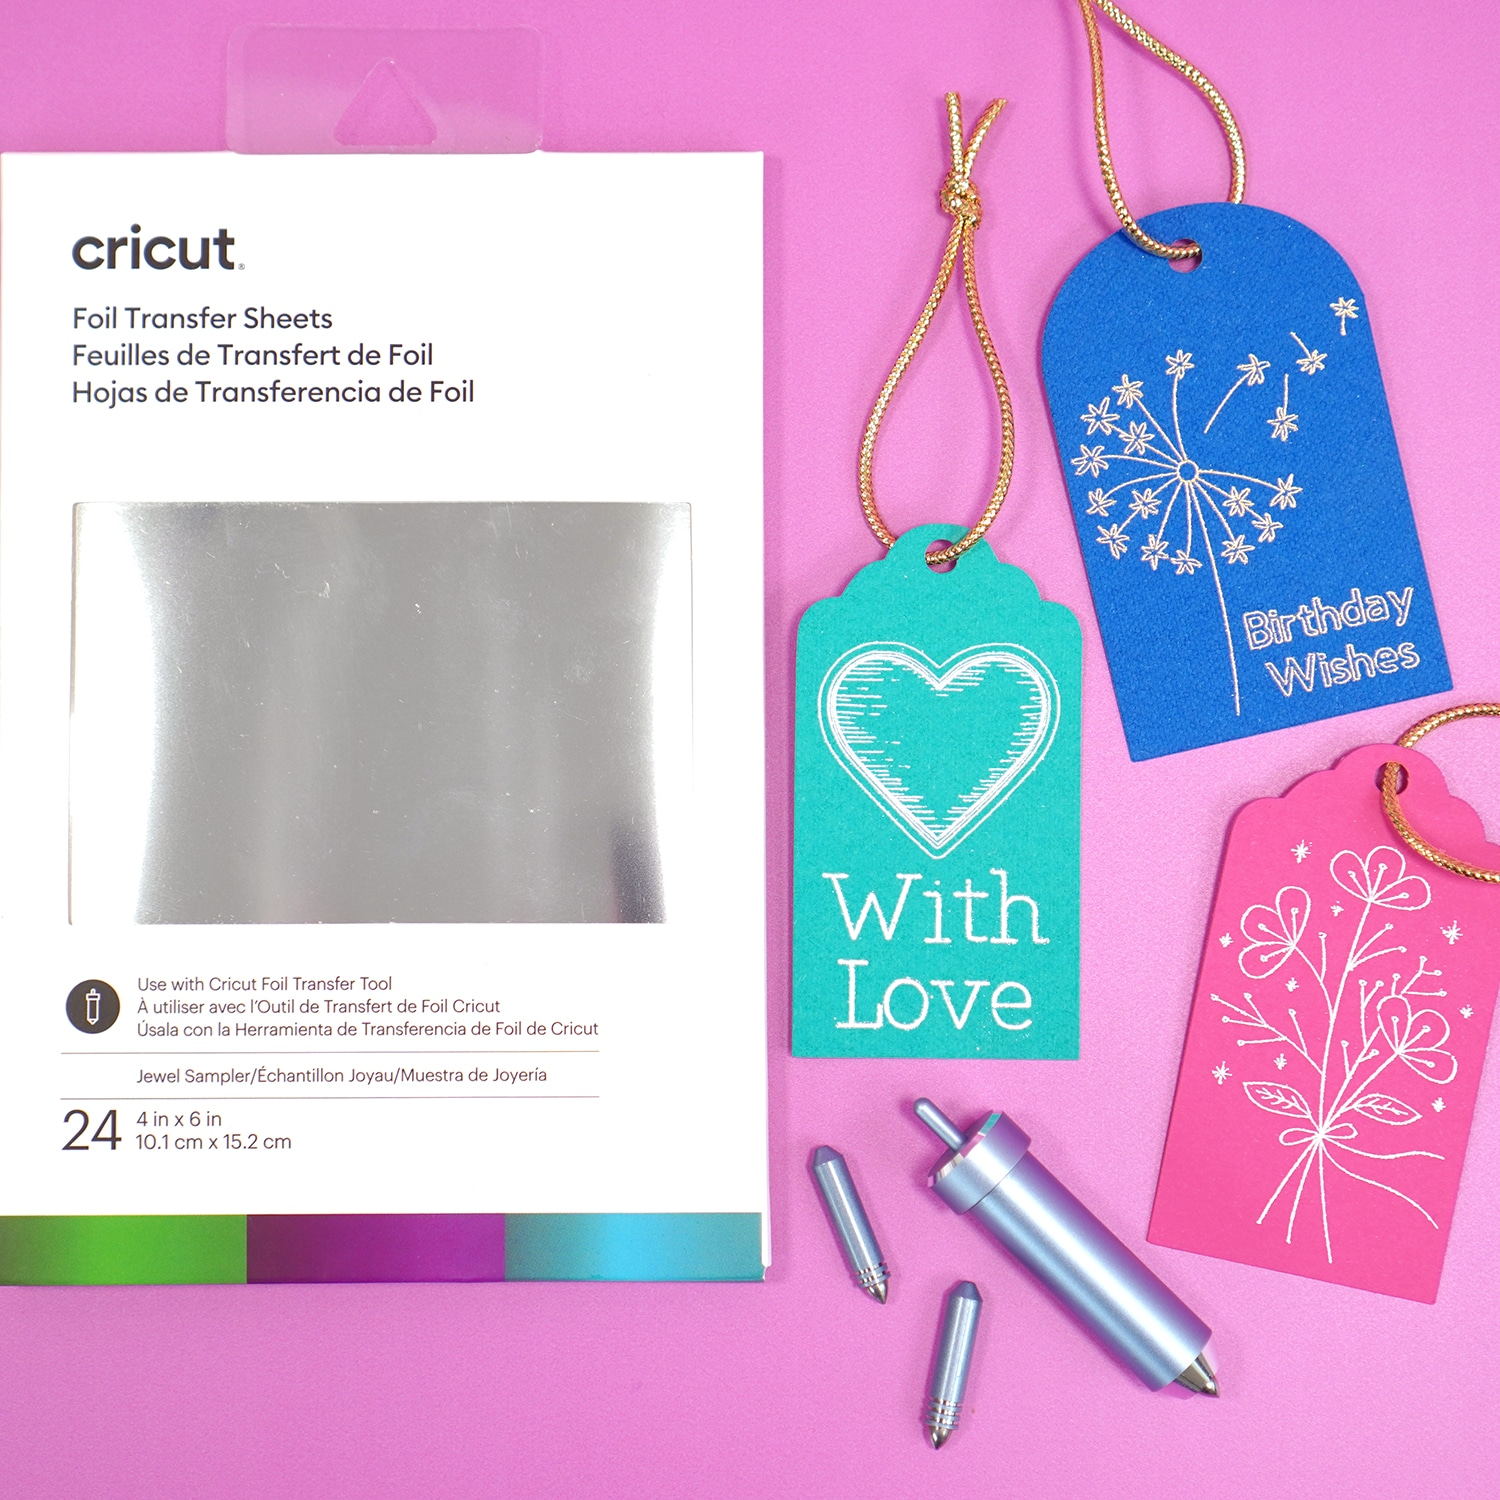 Cricut Foil Transfer System - Tools Foil Sheets and Tips with Foil Gift Tags